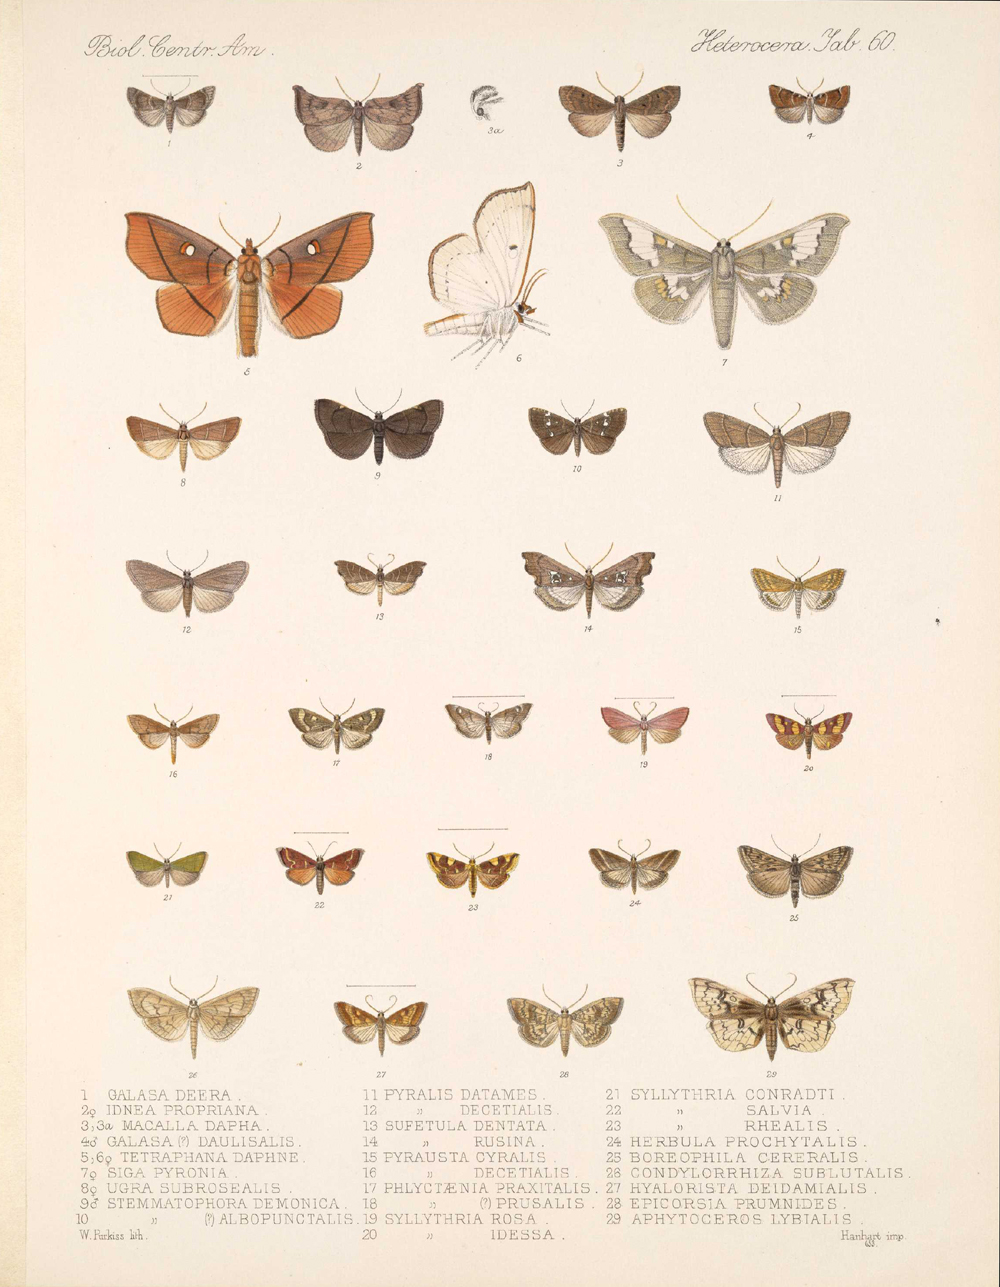 Butterflies and Moths,  Image number:bca_15_03_00_070